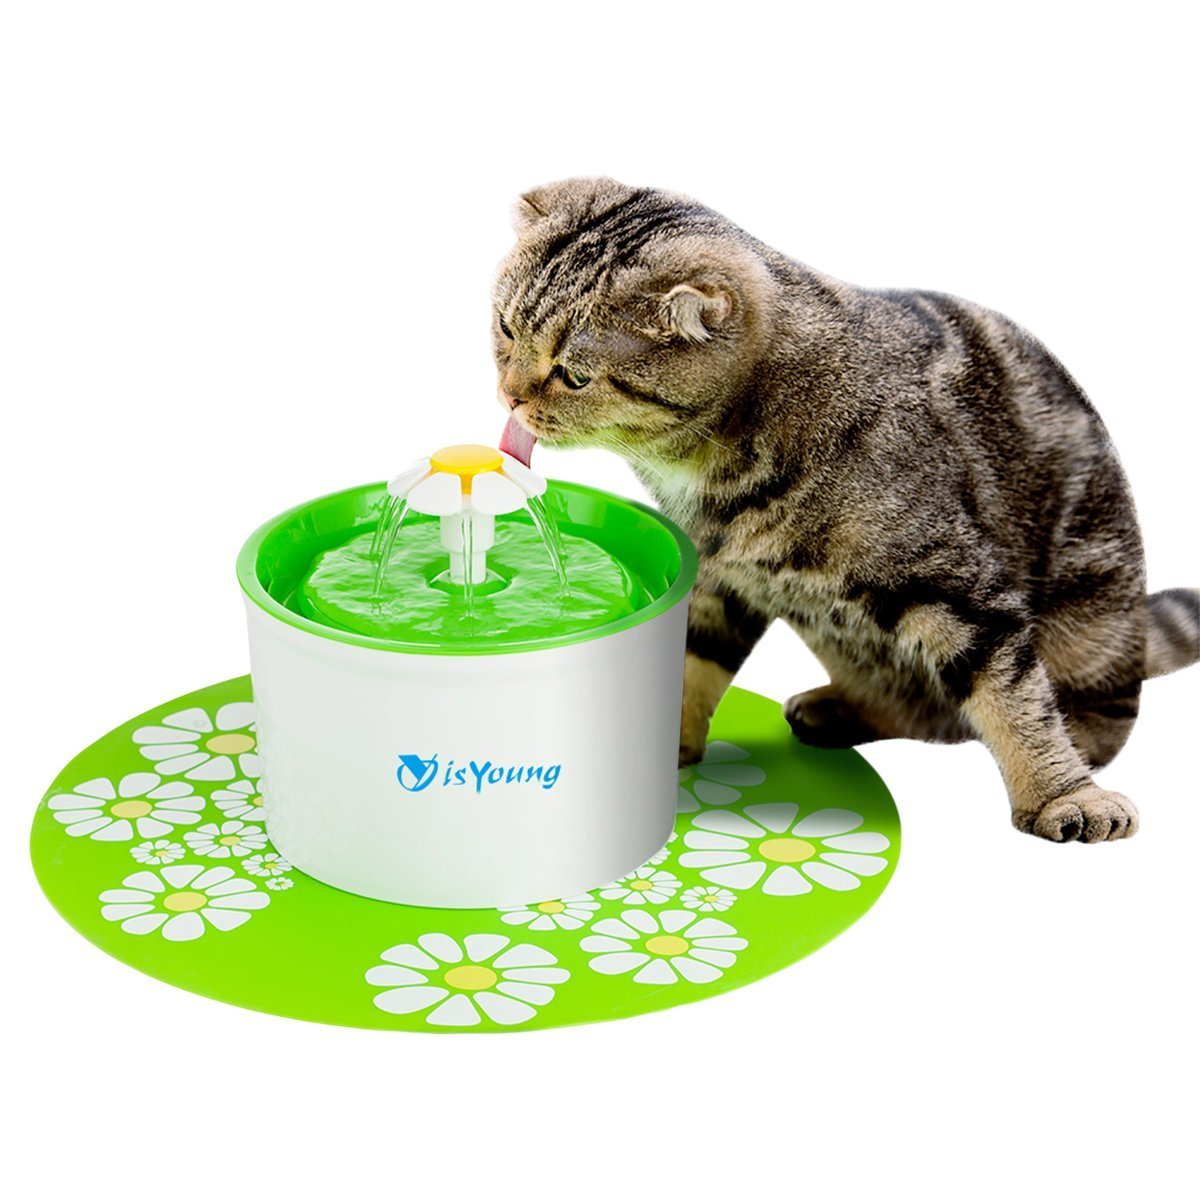 isYoung Pet Drinking Water Fountain 1.6L Dog&Cat Pet Fountain Automatic Pet Water Dispenser with Replacement Filter and Flower Style, Super Quiet and Hygienic